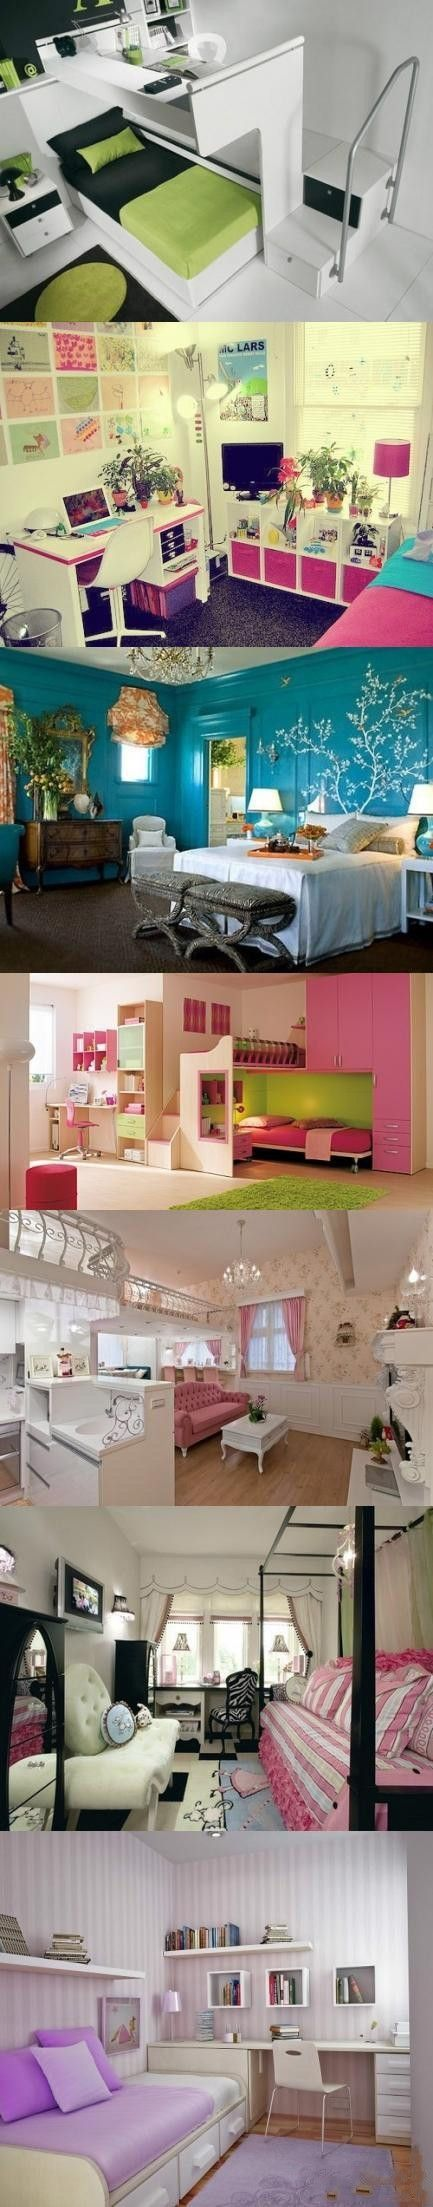 Cute room ideas for teens and young girls young teen for Cute bedroom ideas for teens